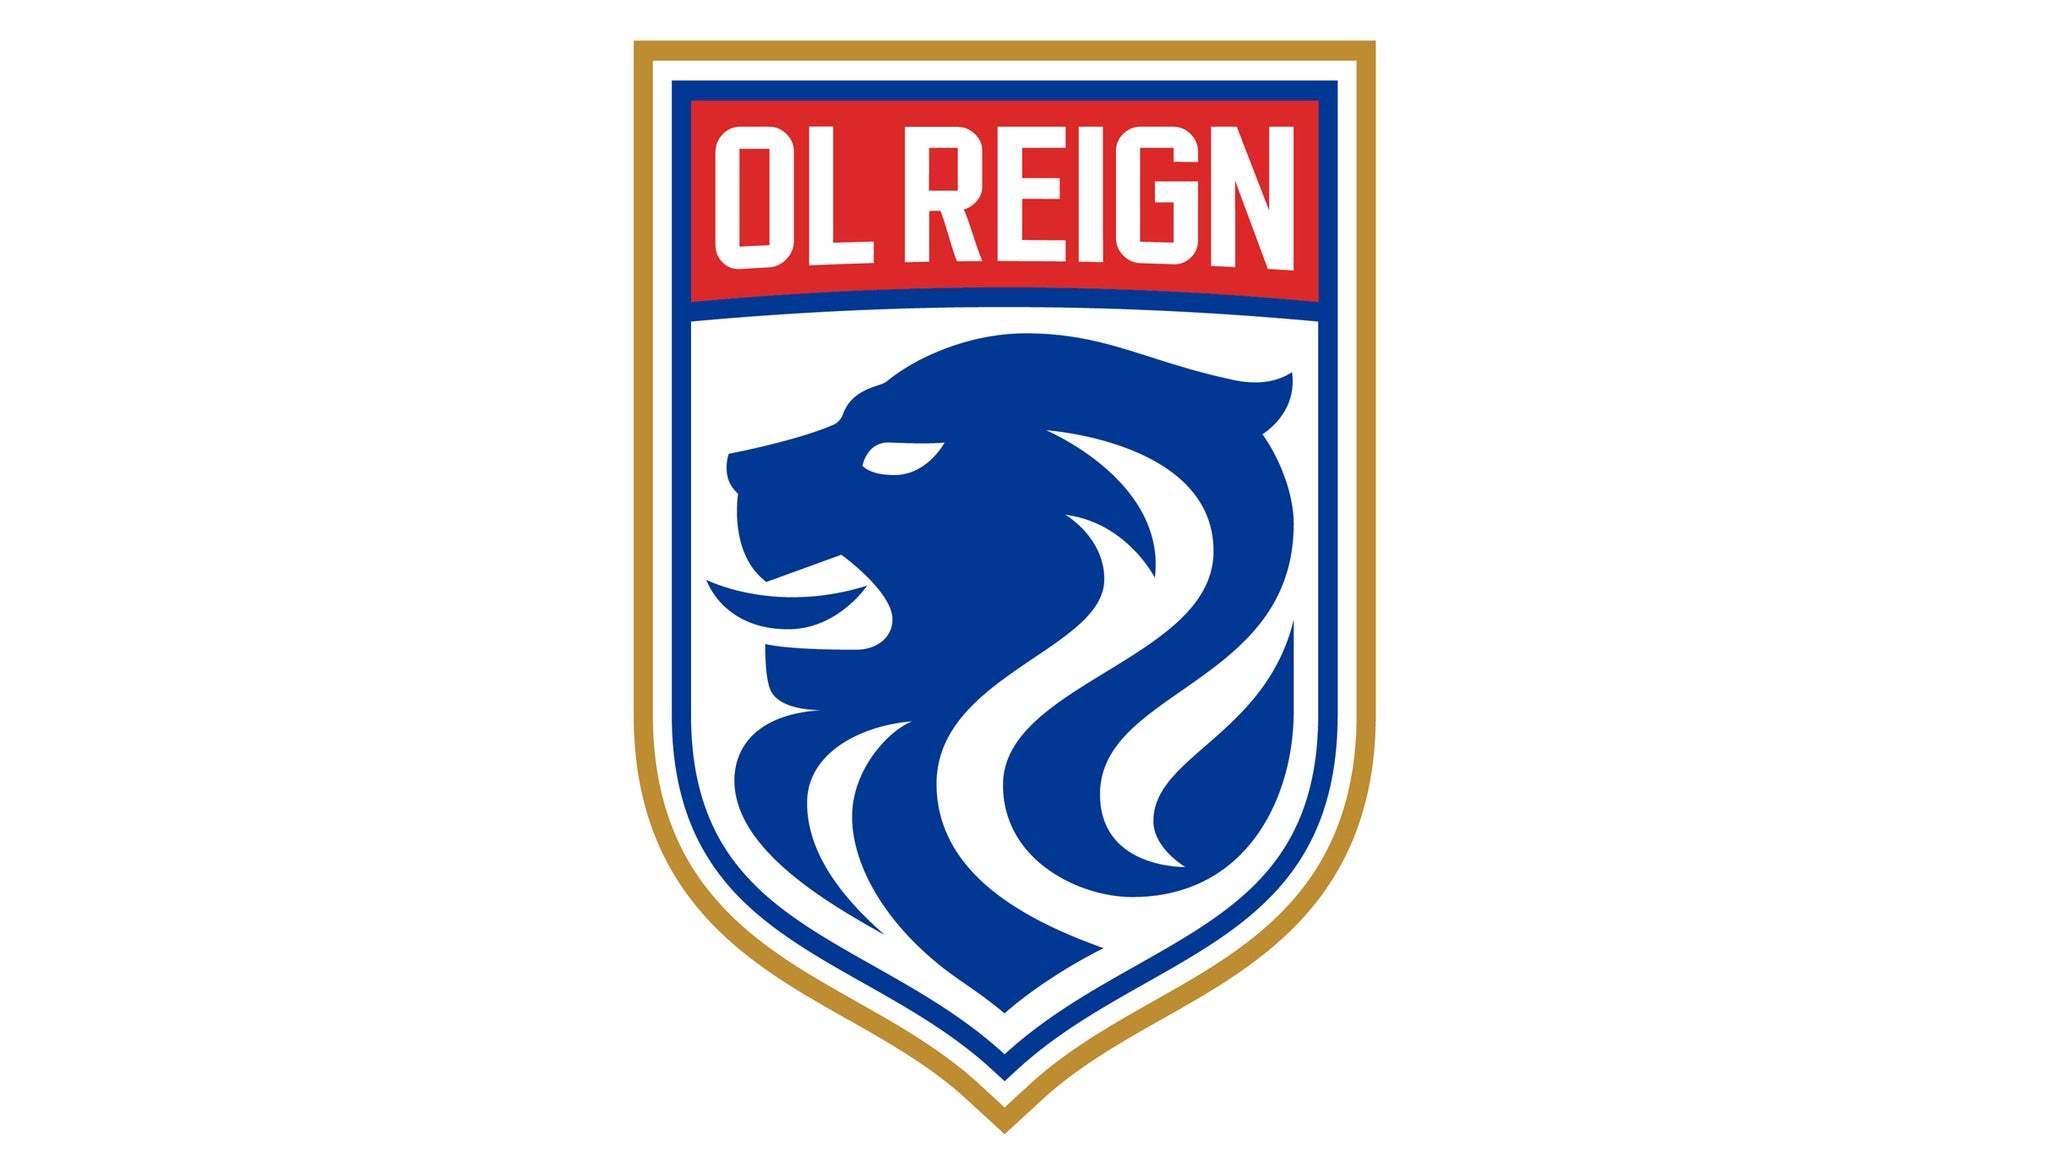 OL Reign vs. Houston Dash at Cheney Stadium